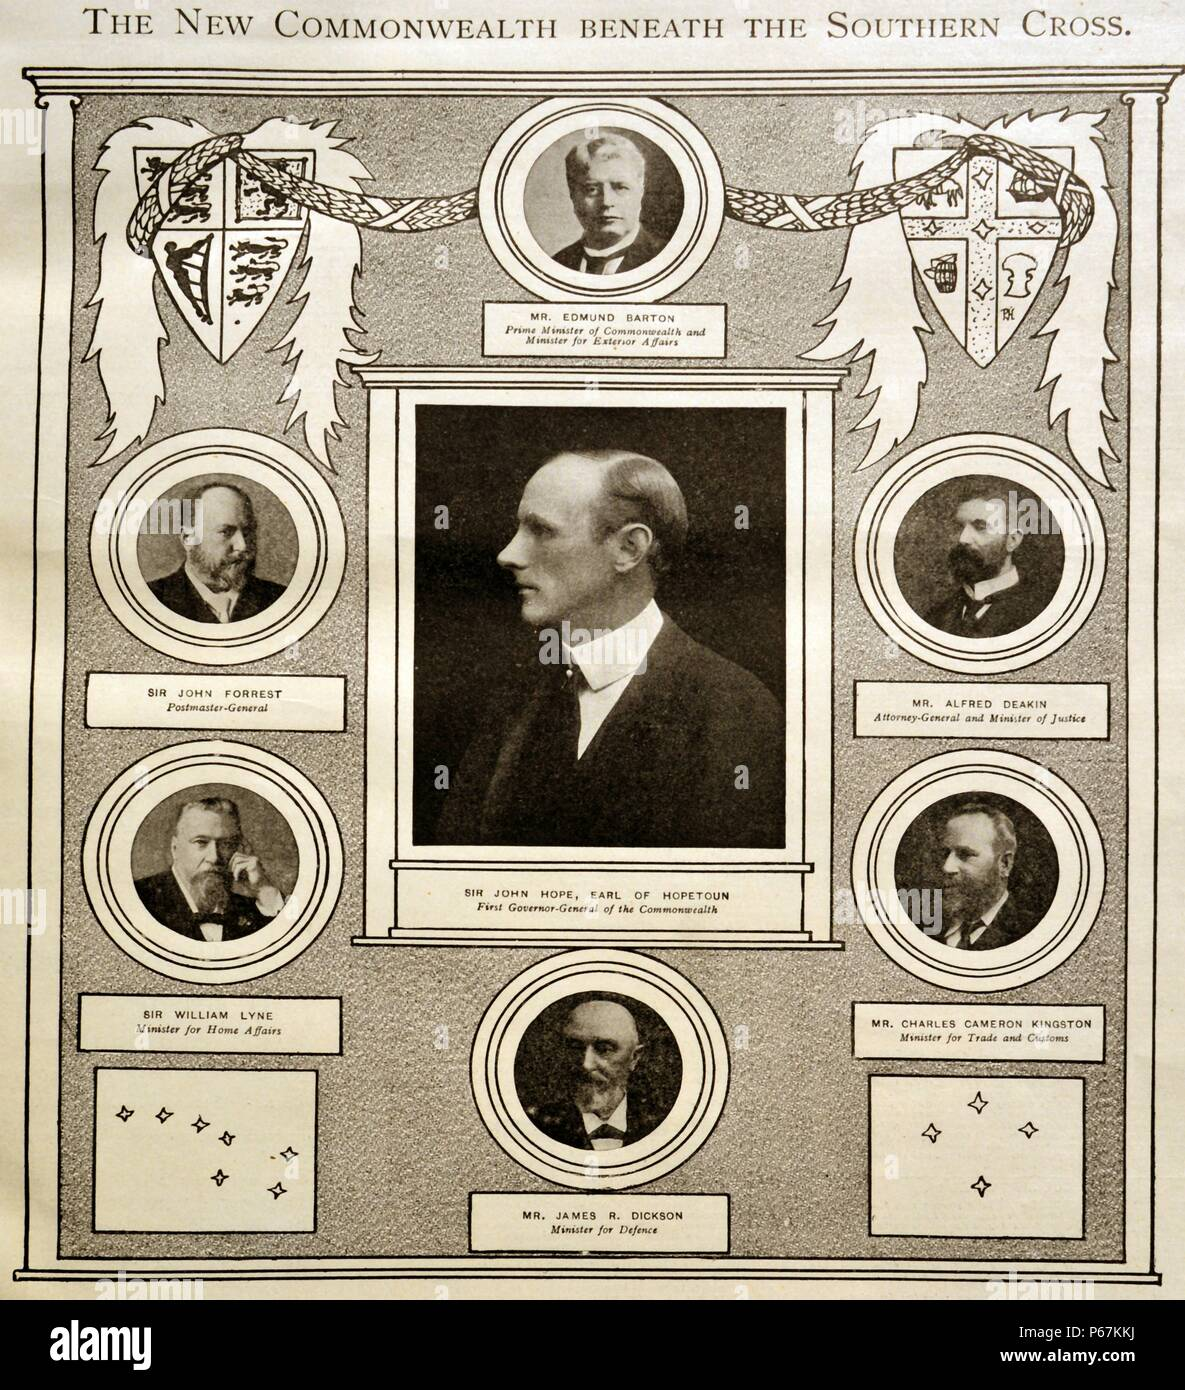 Chart showing the New Commonwealth Beneath the Southern Cross. (Left to Right) Prime Minister of Commonwealth and Minister for Exterior Affairs, Mr Edmund Barton (1849-1920), Attorney-General and Minister of Justice, Mr Alfred Deakin (1856-1919), Minister for Trade and Customs, Mr Charles Cameron Kingston (1850-1908), Minister of Defence, Mr James R. Dickson (1832-1901), Minister of Home Affairs, Sir William Lyne (1844-1913), Postmaster- General, Sir John Forrest (1847-1918). (Centre) First Governor-General of the Commonwealth, Sir John Hope, Earl of Hopetoun (1860-1908). Dated 1901 - Stock Image